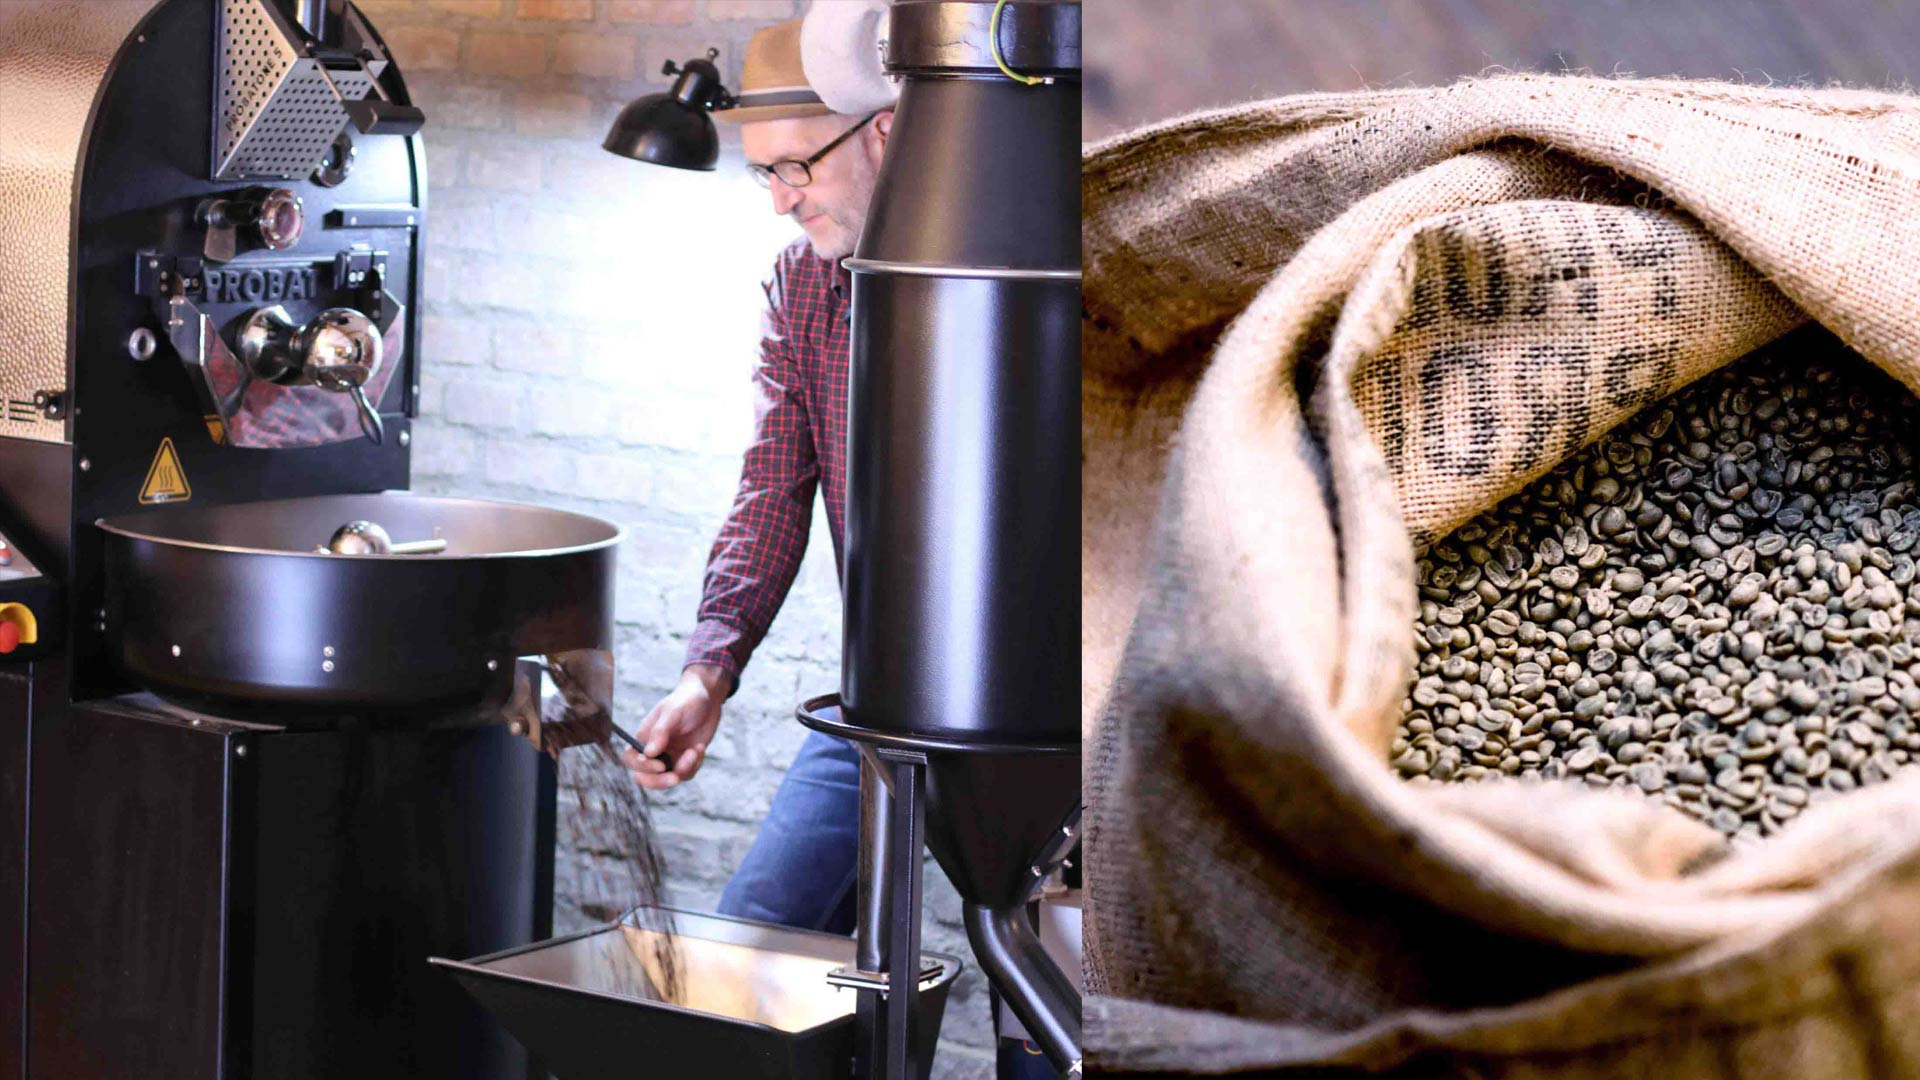 Reiner roasting coffee beans with love